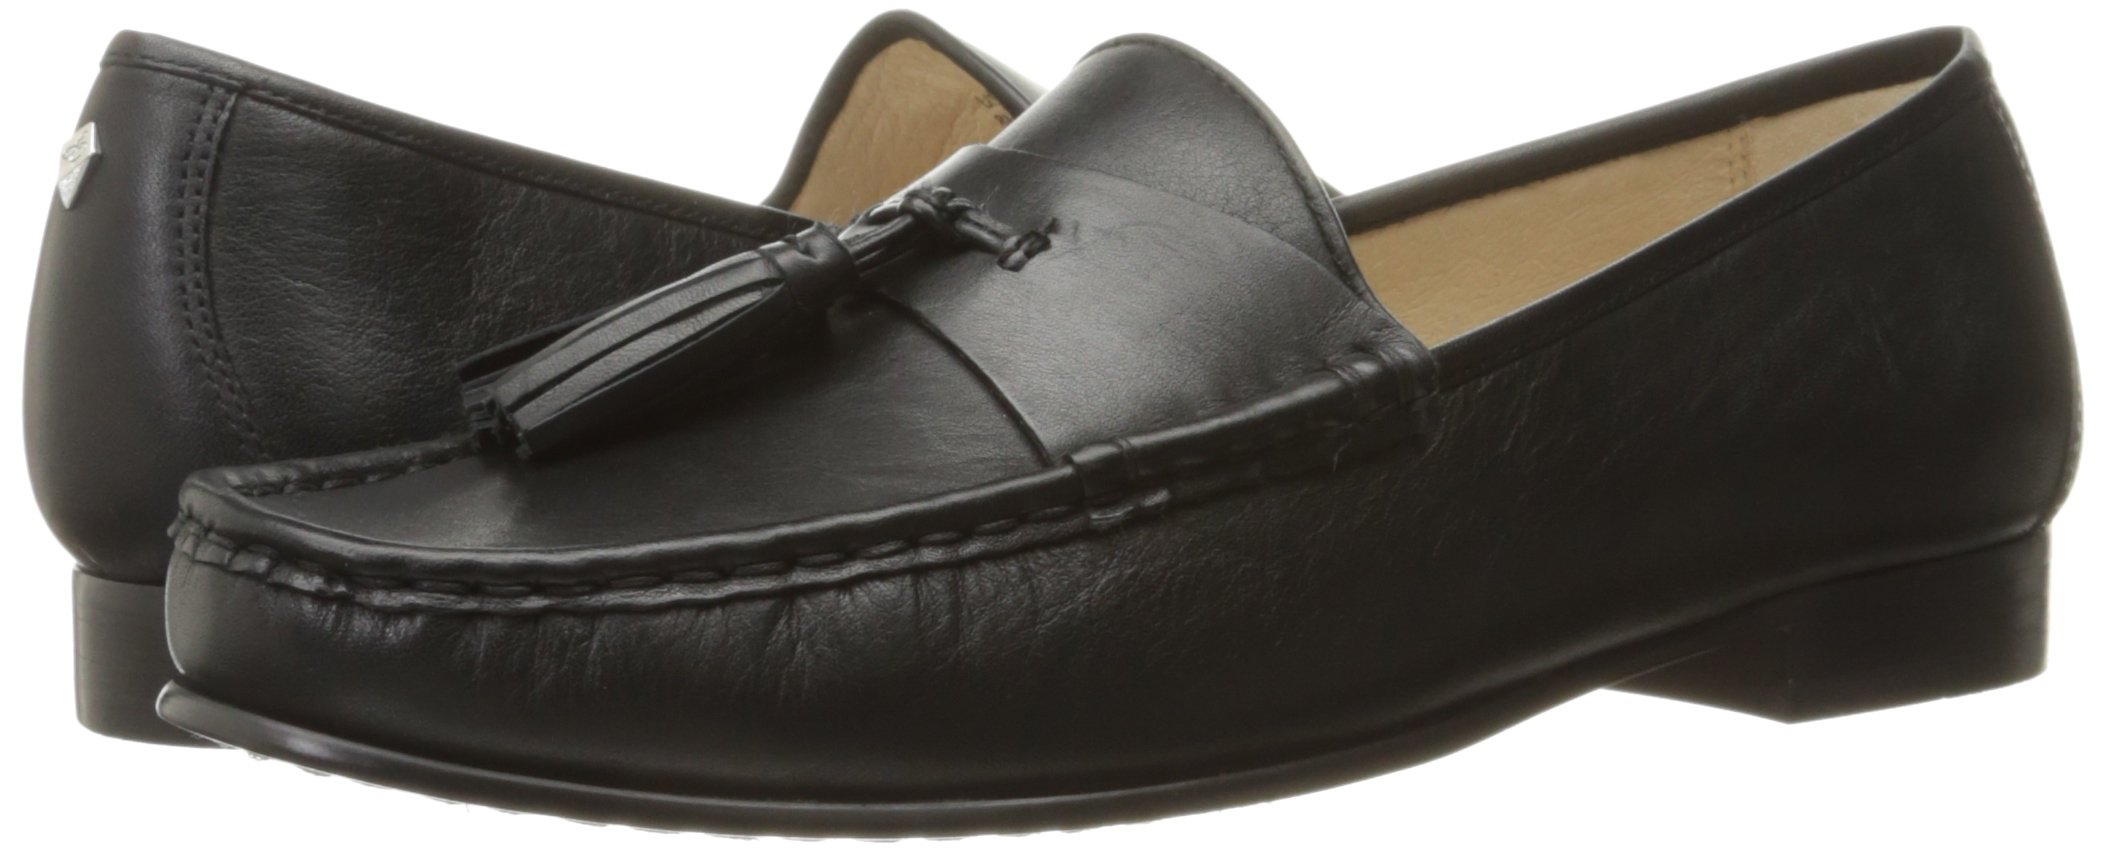 Sam Edelman Women's Therese Slip-On Loafer, Black, 7 M US by Sam Edelman (Image #6)